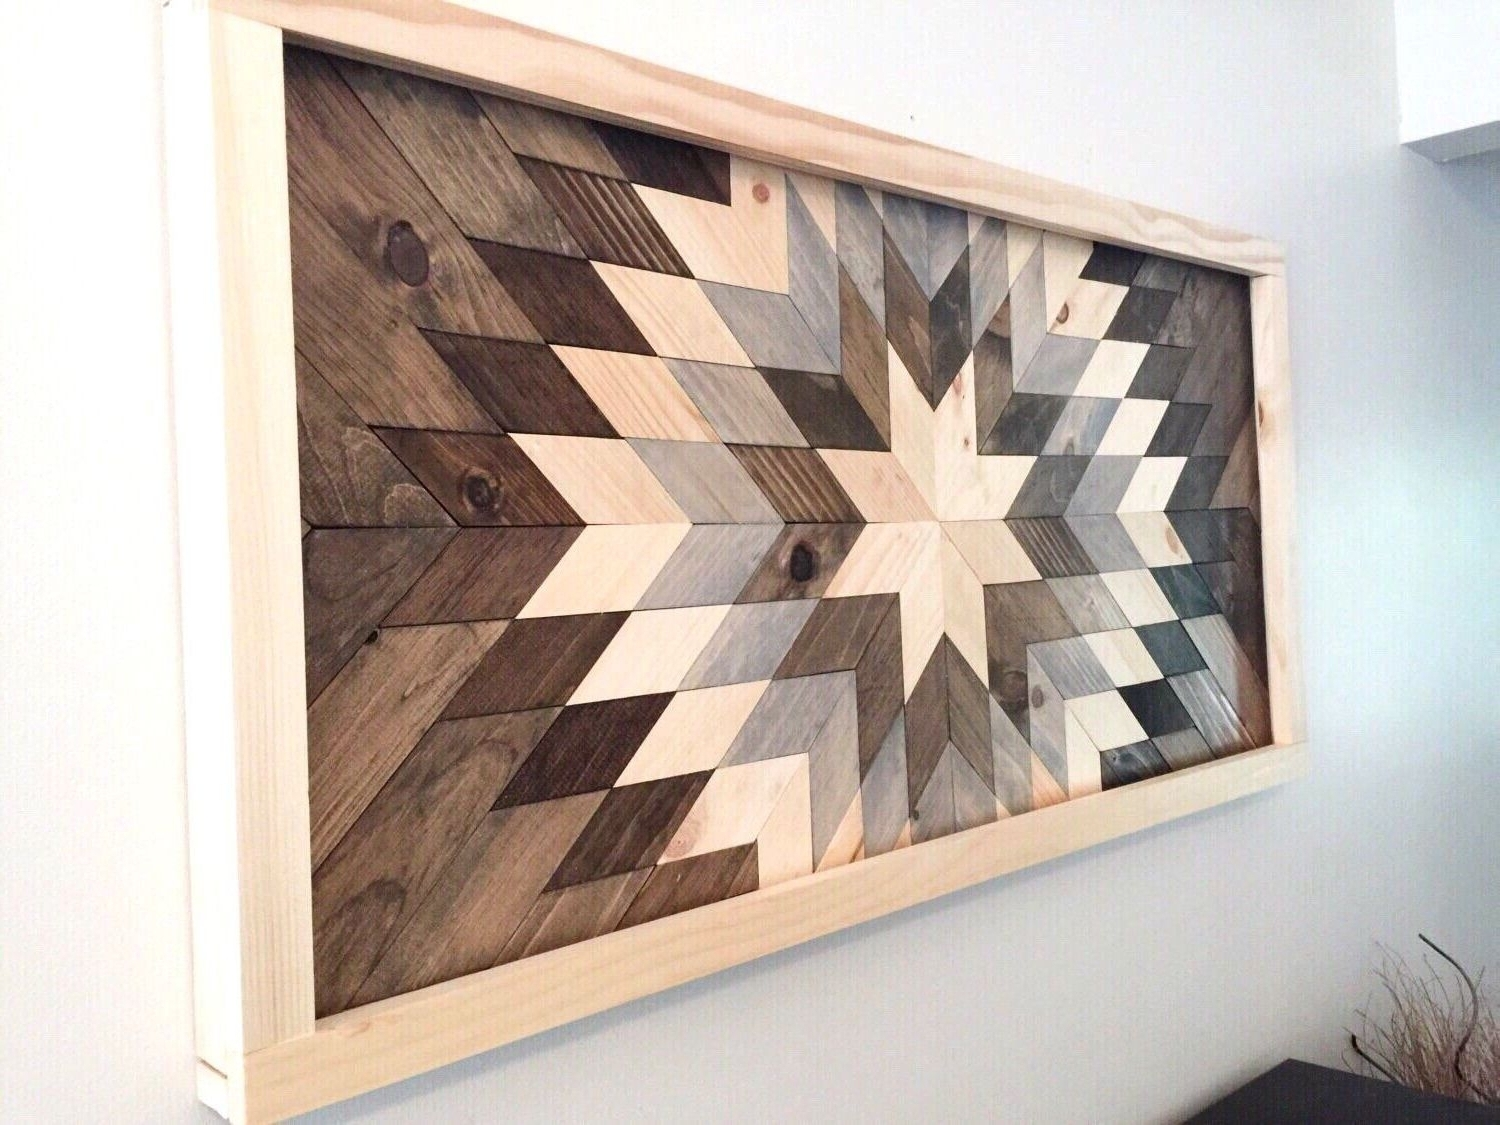 2018 Wood Wall Art Diy With Wood Decor Wall Art Wood Wall Art Diy Excellent Wooden Decor Ideas (View 3 of 15)